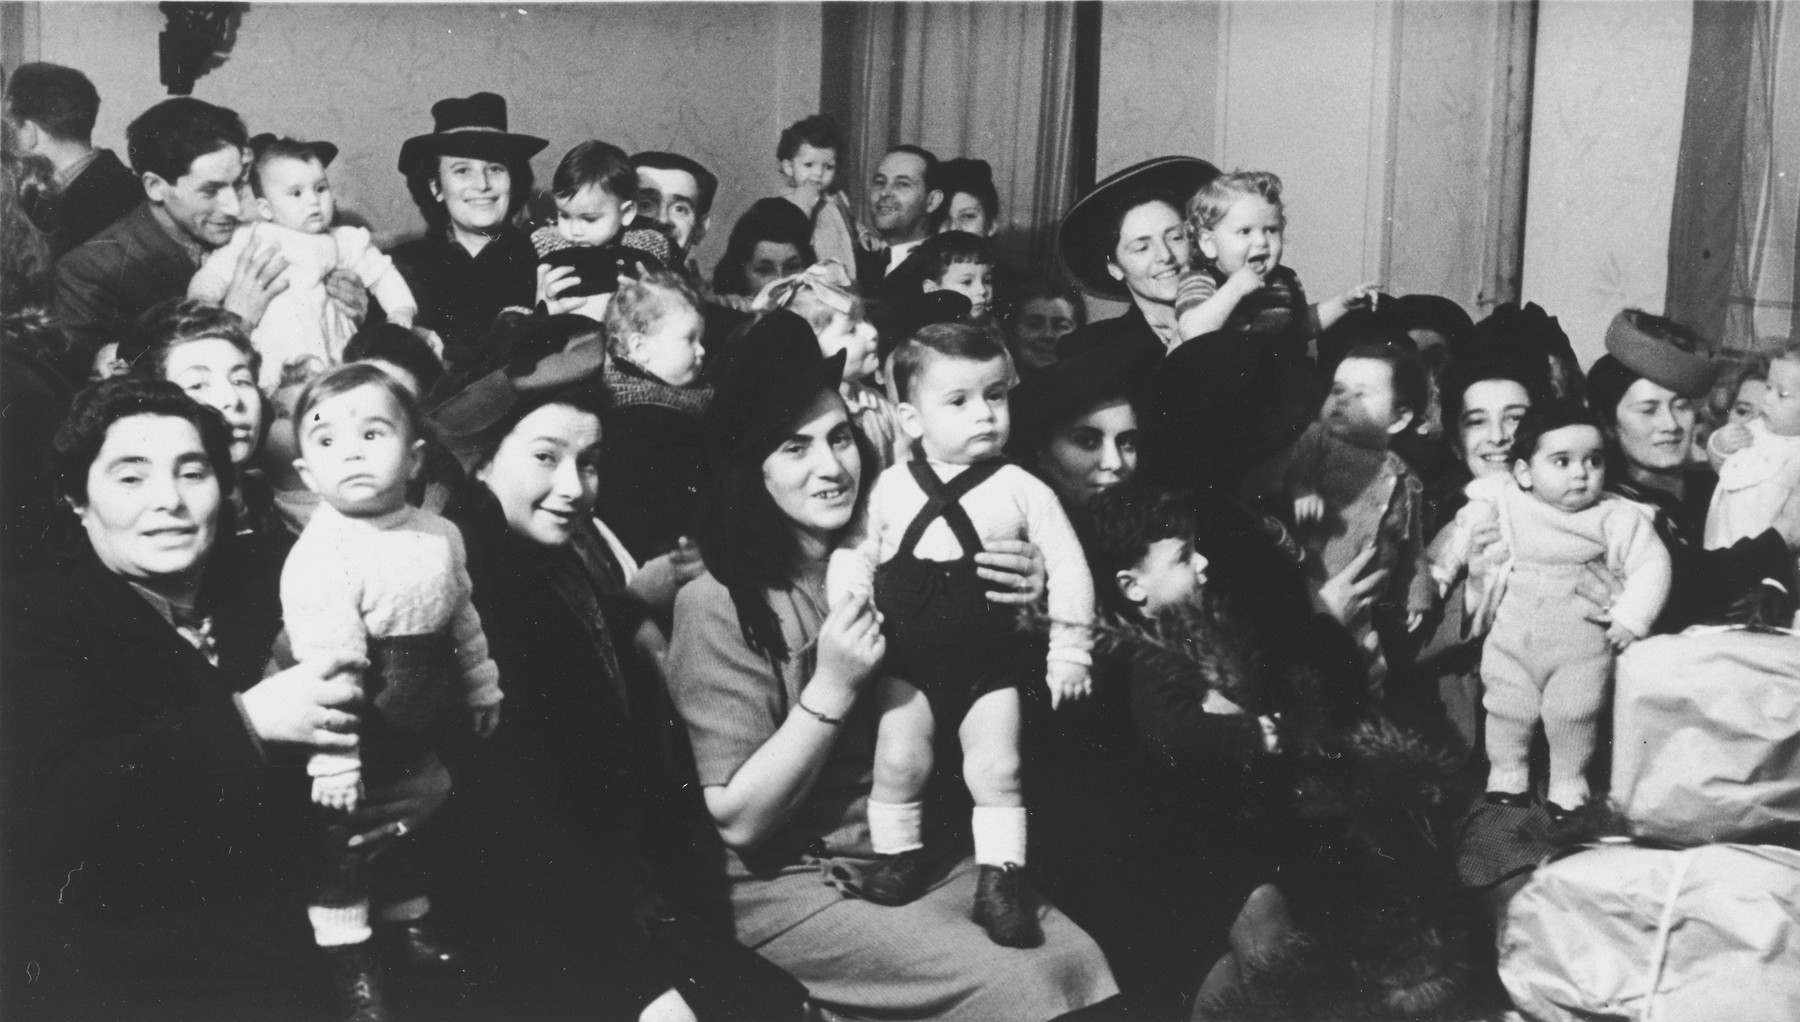 Women and children celebrate Tu B'Shvat in the Hanover DP community.  Among those pictured is Mrs. Roman Berger.  In the back center is Shimon Bornstein holding his son David.